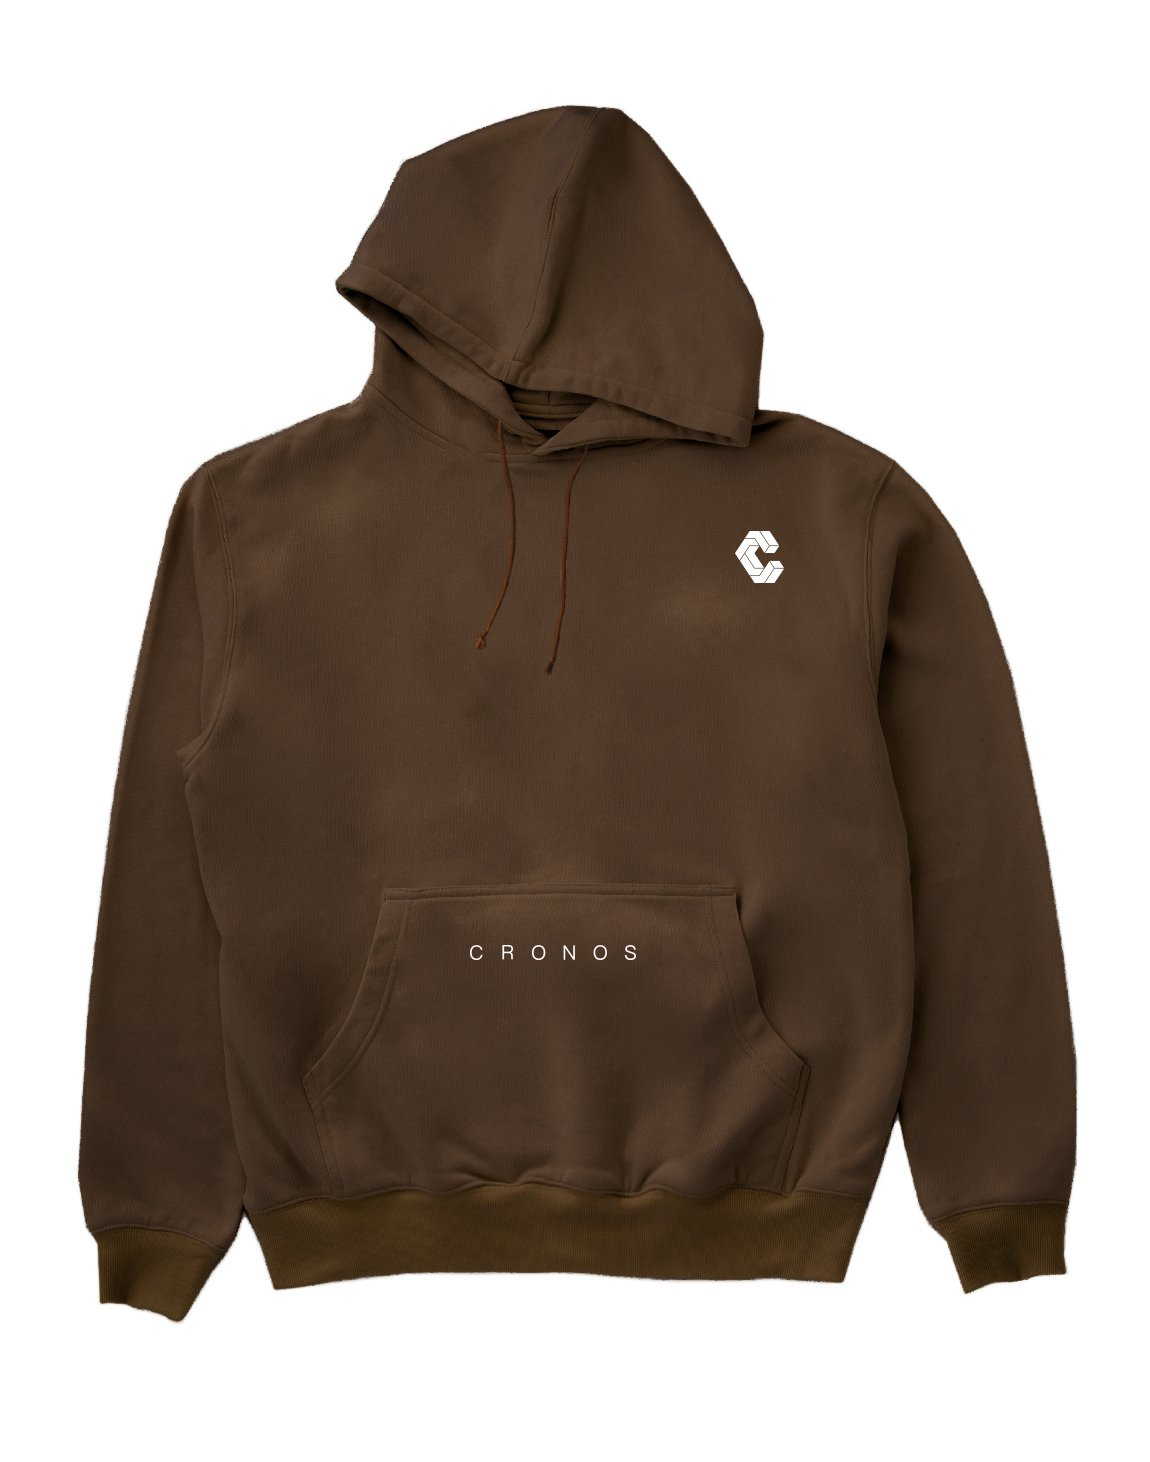 <img class='new_mark_img1' src='https://img.shop-pro.jp/img/new/icons1.gif' style='border:none;display:inline;margin:0px;padding:0px;width:auto;' />CRONOS PULL OVER PARKA 【BROWN】